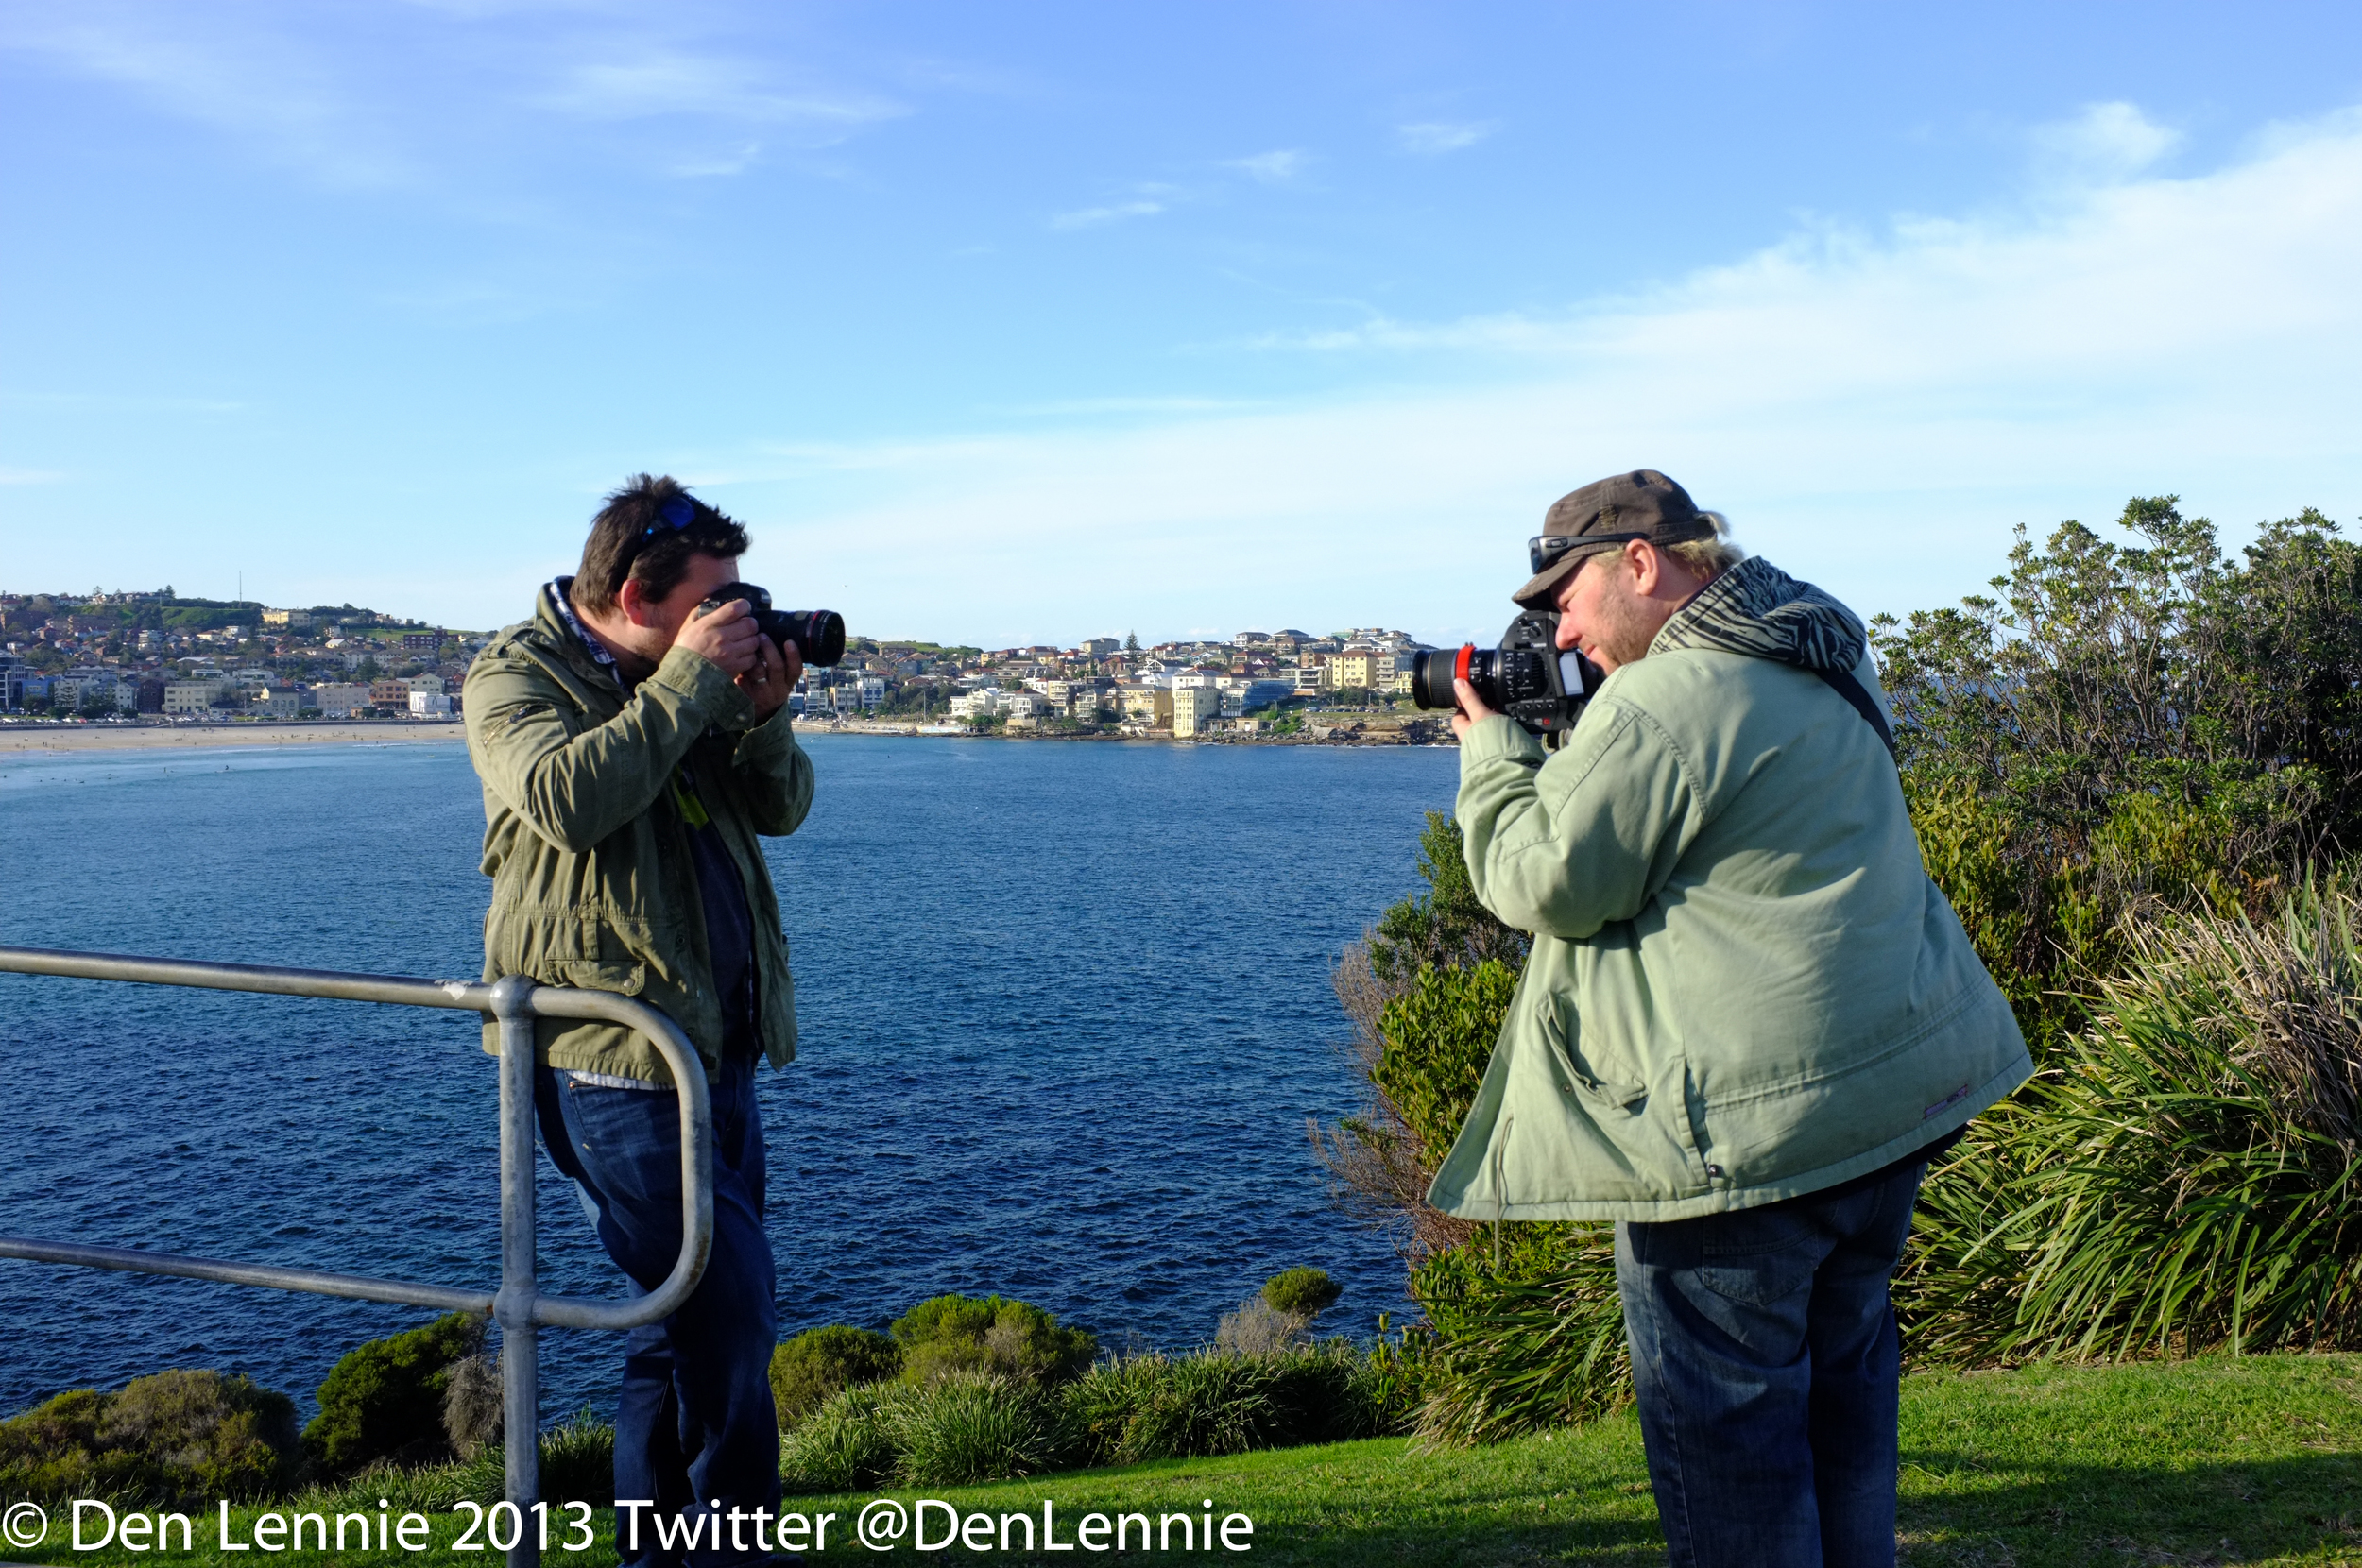 Den & Mick shooting in Sydney